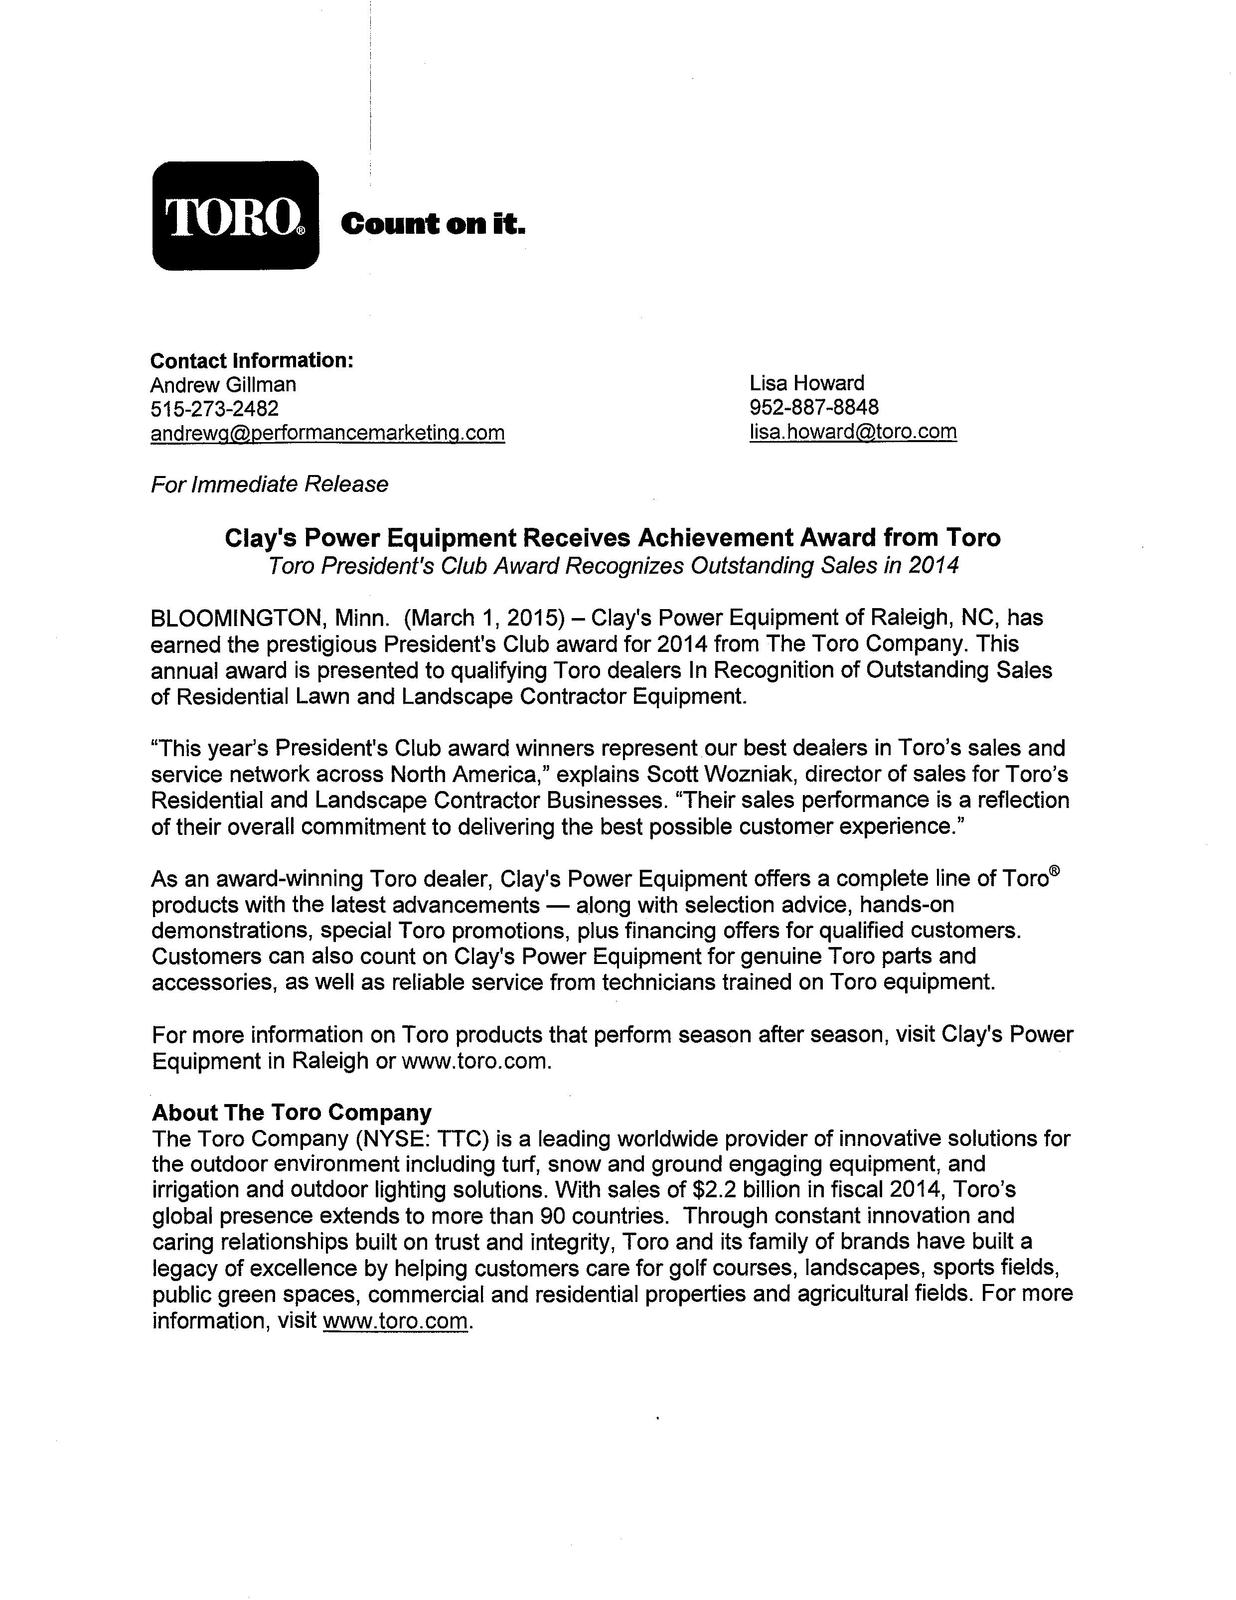 2014 Toro President's Club Award Press Release